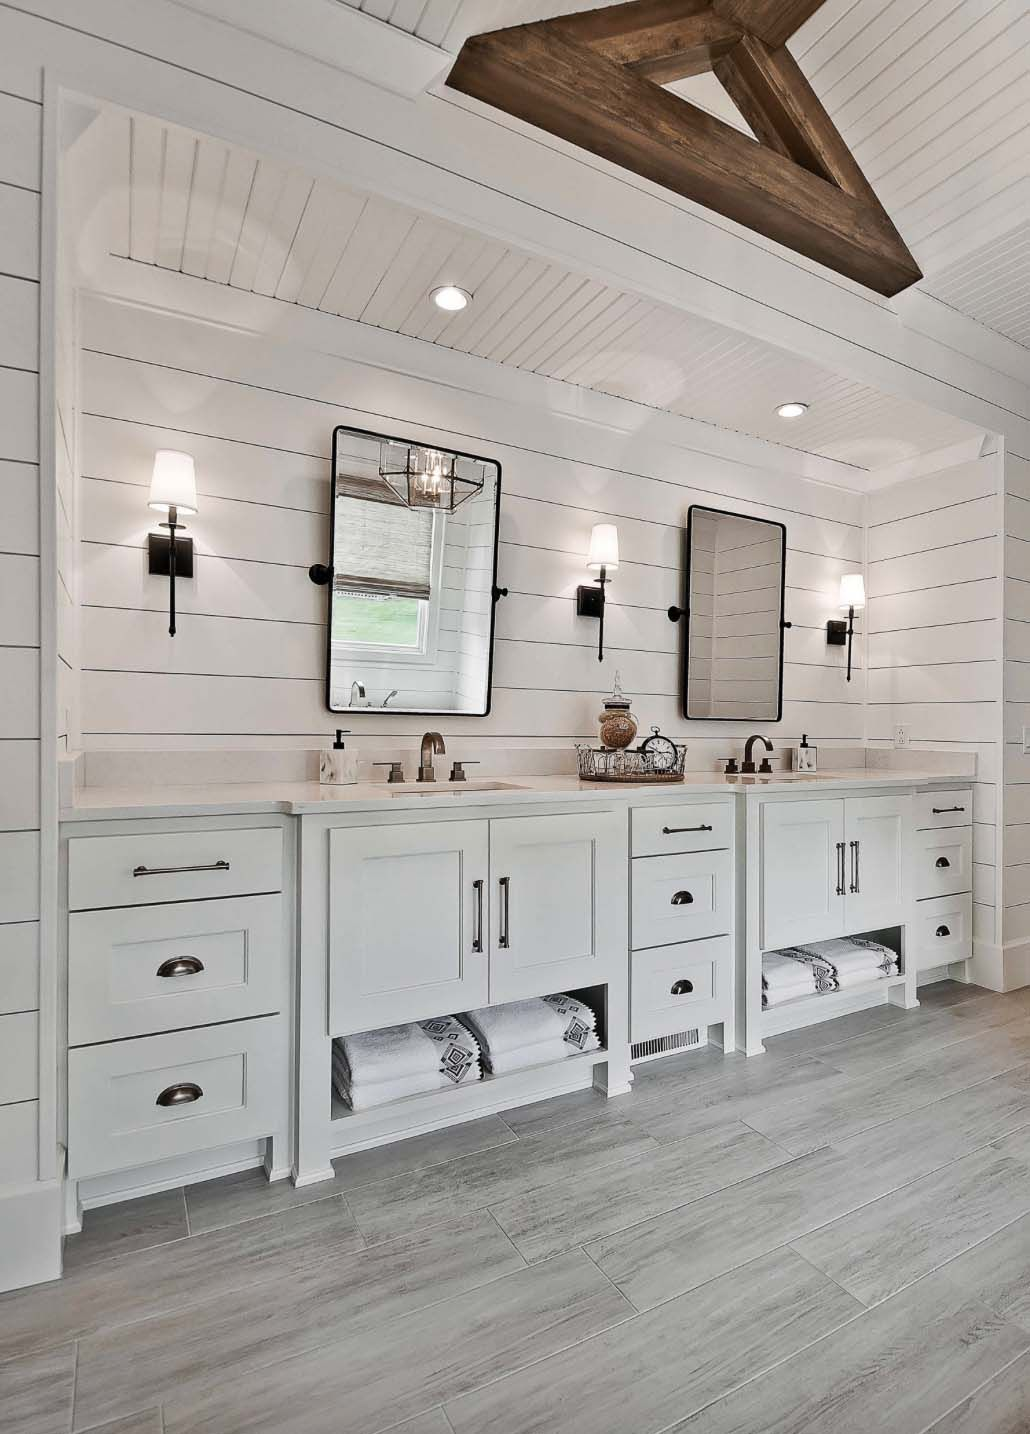 Welcoming craftsman style home with farmhouse touches in Arkansas #craftsmanstylehomes